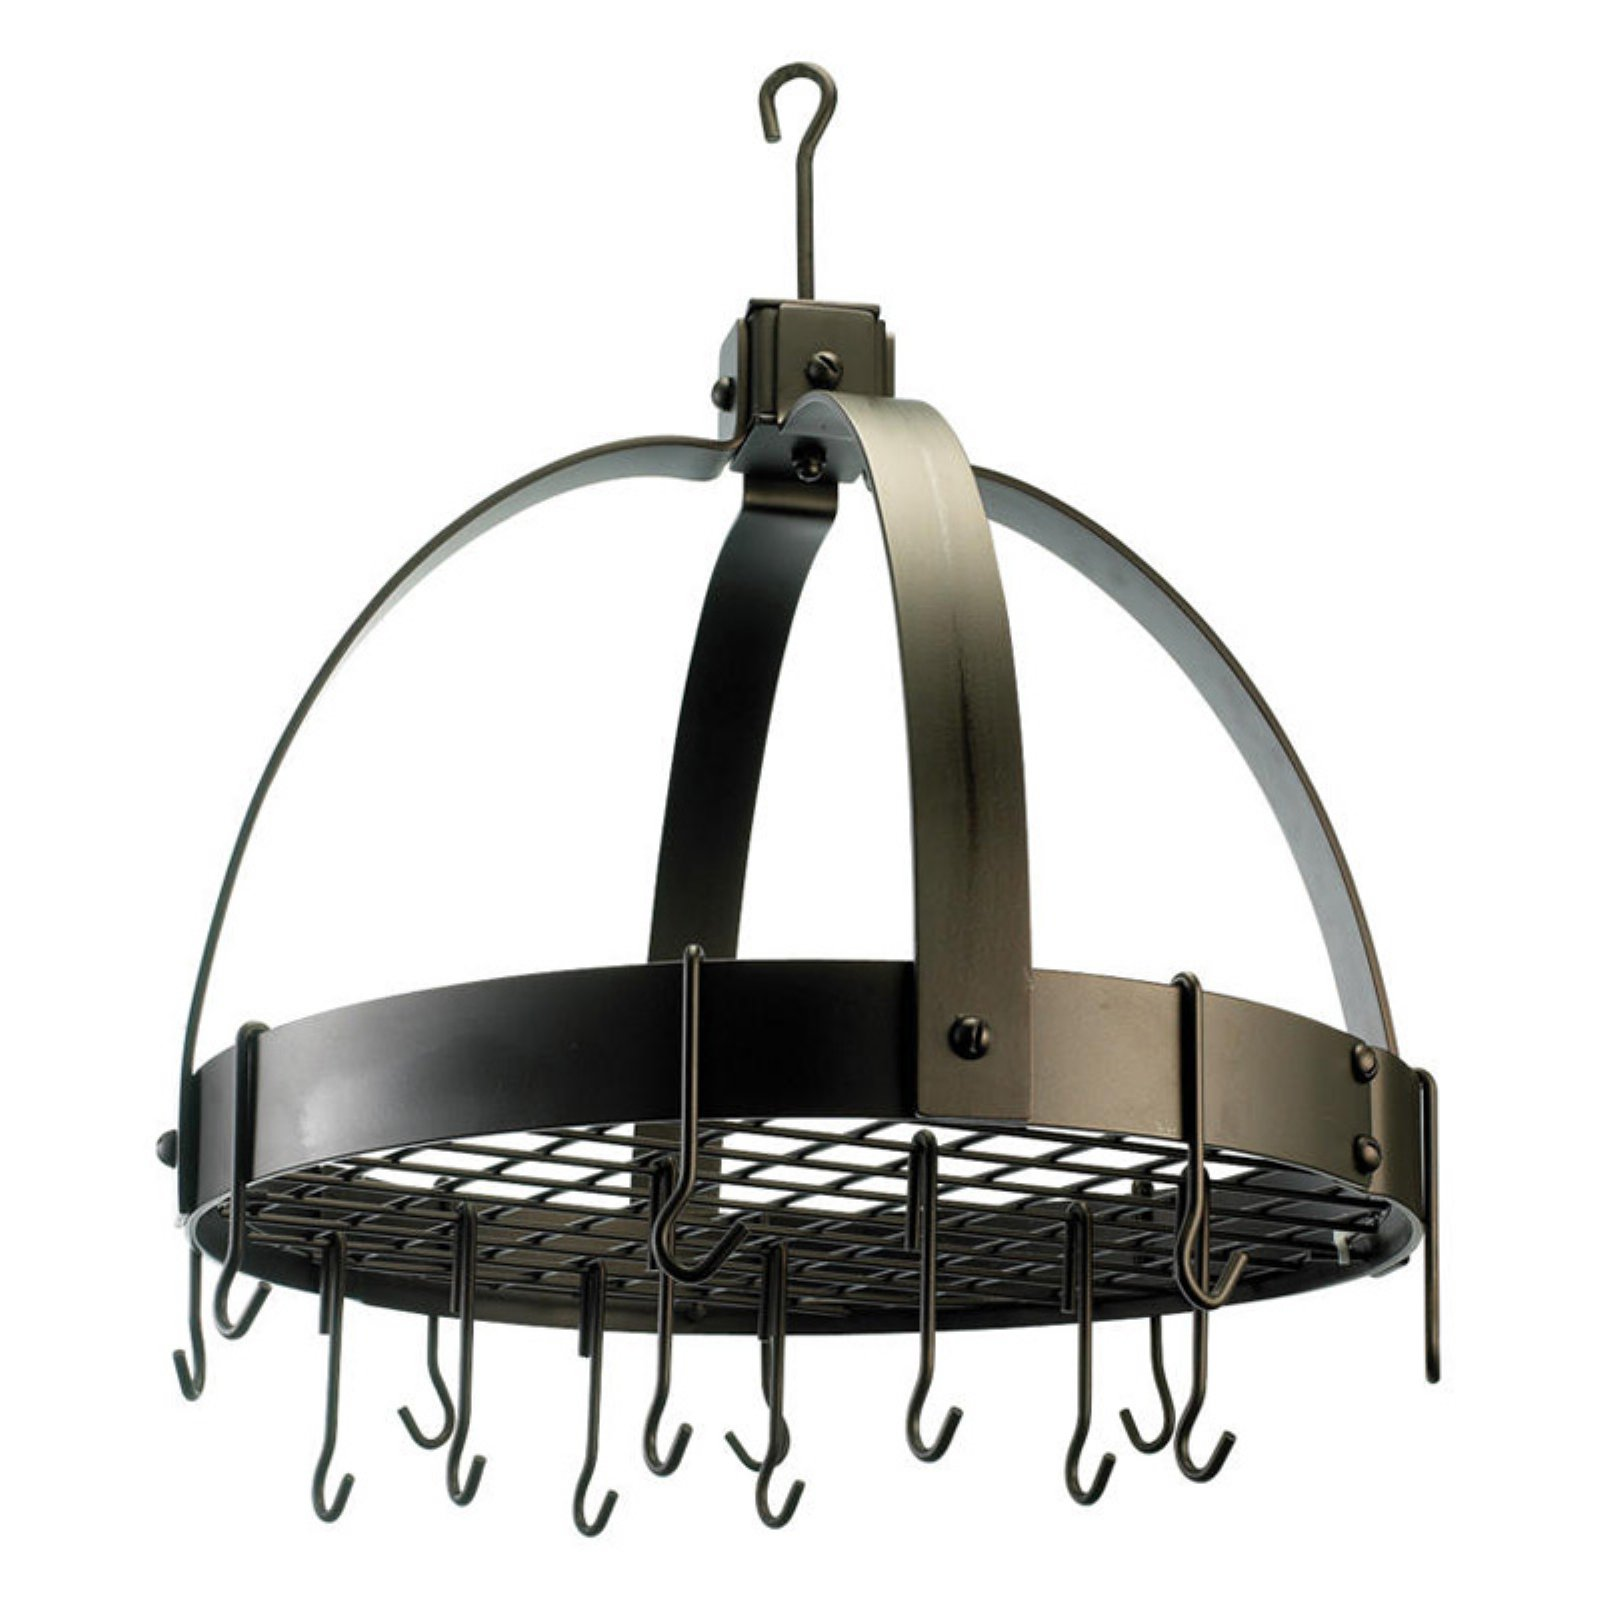 Round Dome Pot Rack with Grid